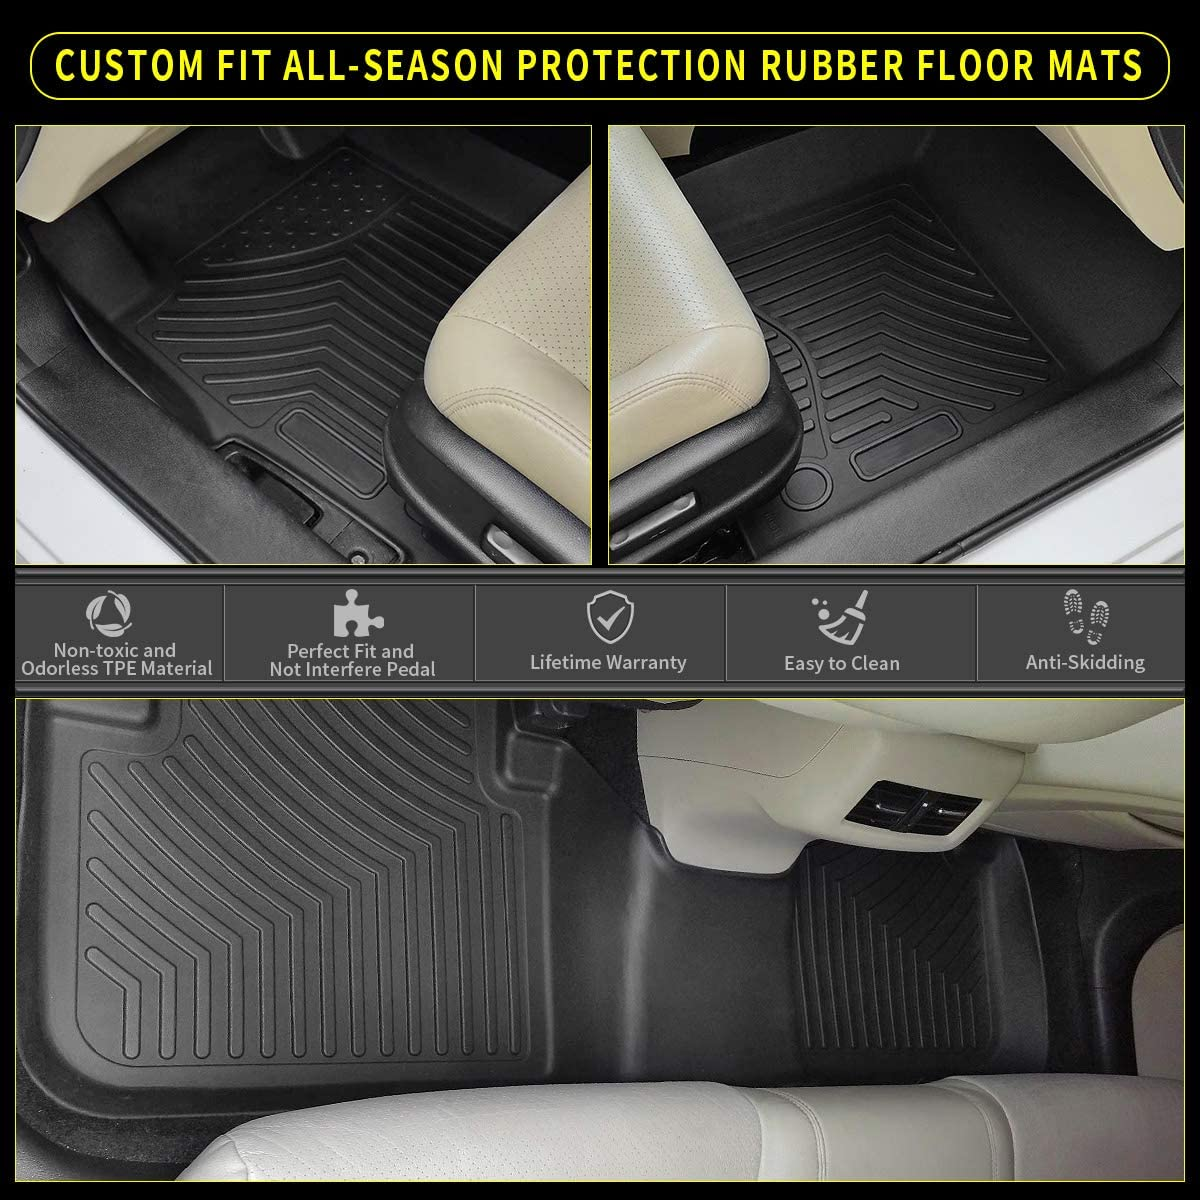 YITAMOTOR Floor Mats Compatible with 2015-2020 Chevy Colorado Crew Cab//GMC Canyon Crew Cab Custom Fit Floor Liners Black 1st /& 2nd Row All Weather Protection